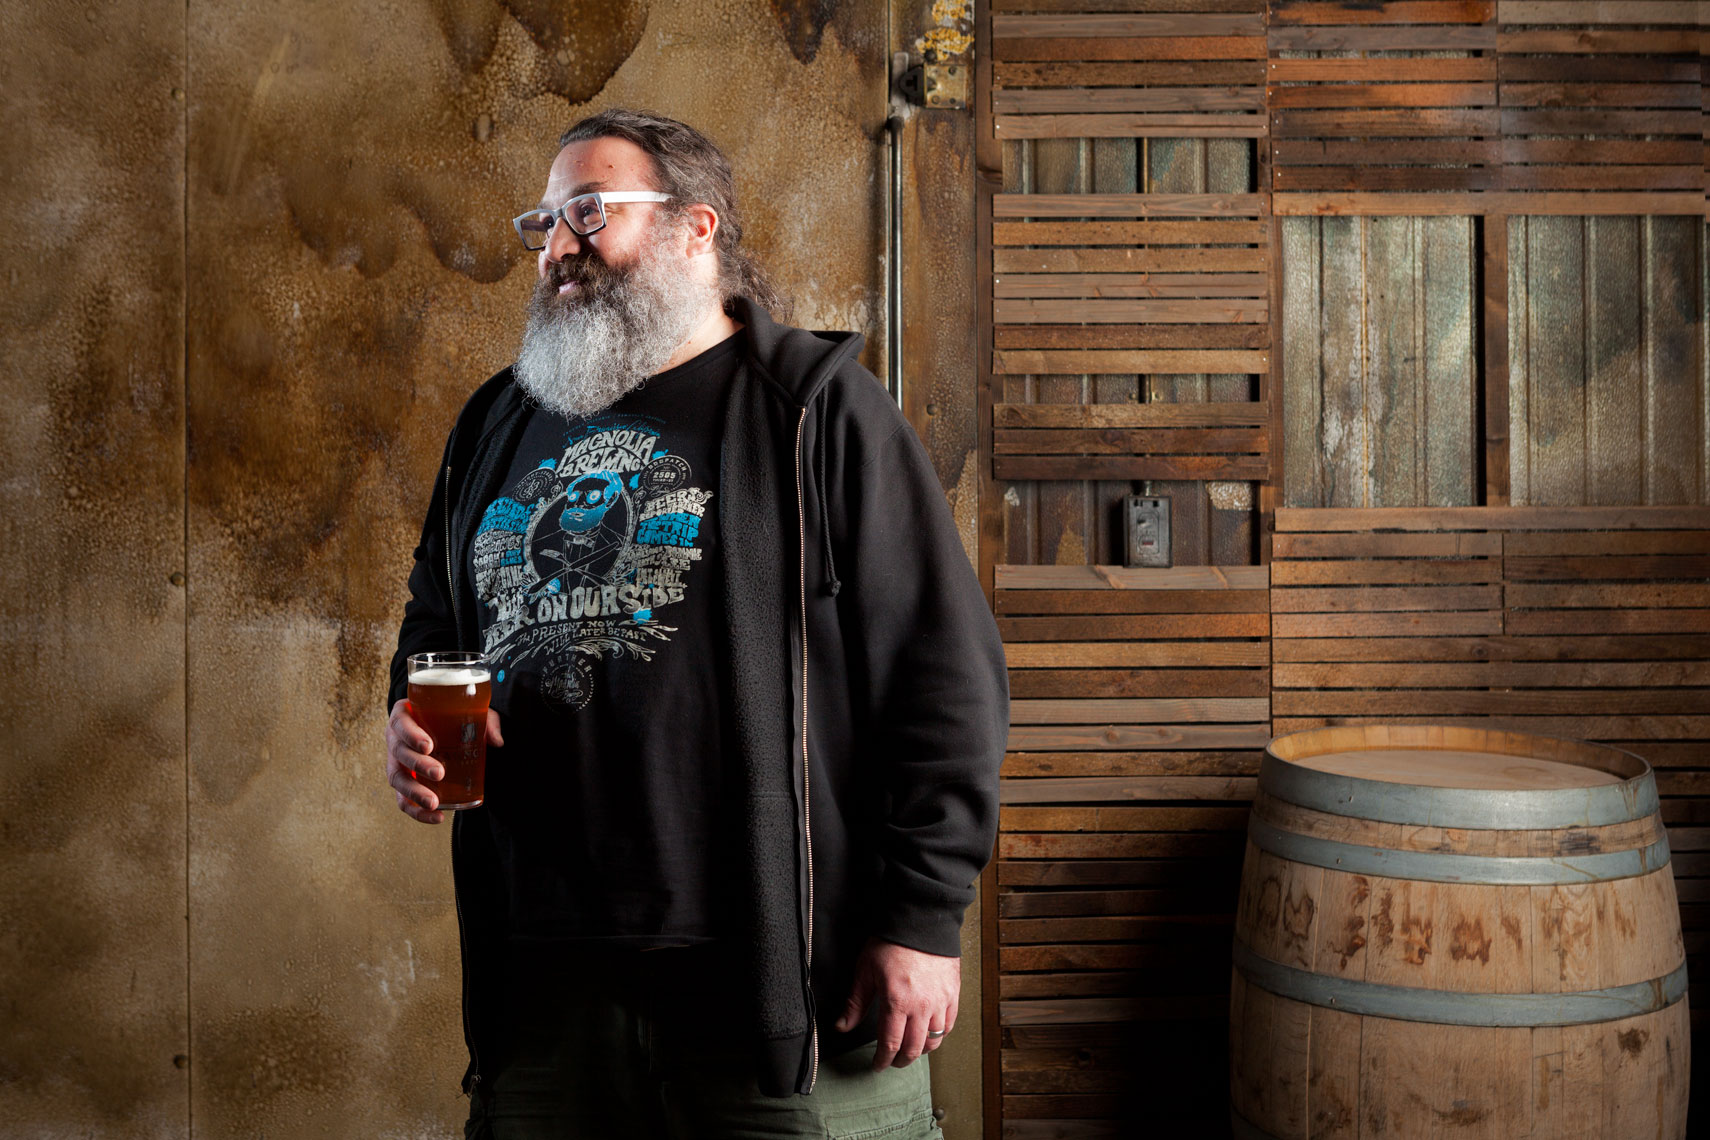 Dave_McLean,  Founder of Magnolia Brewery